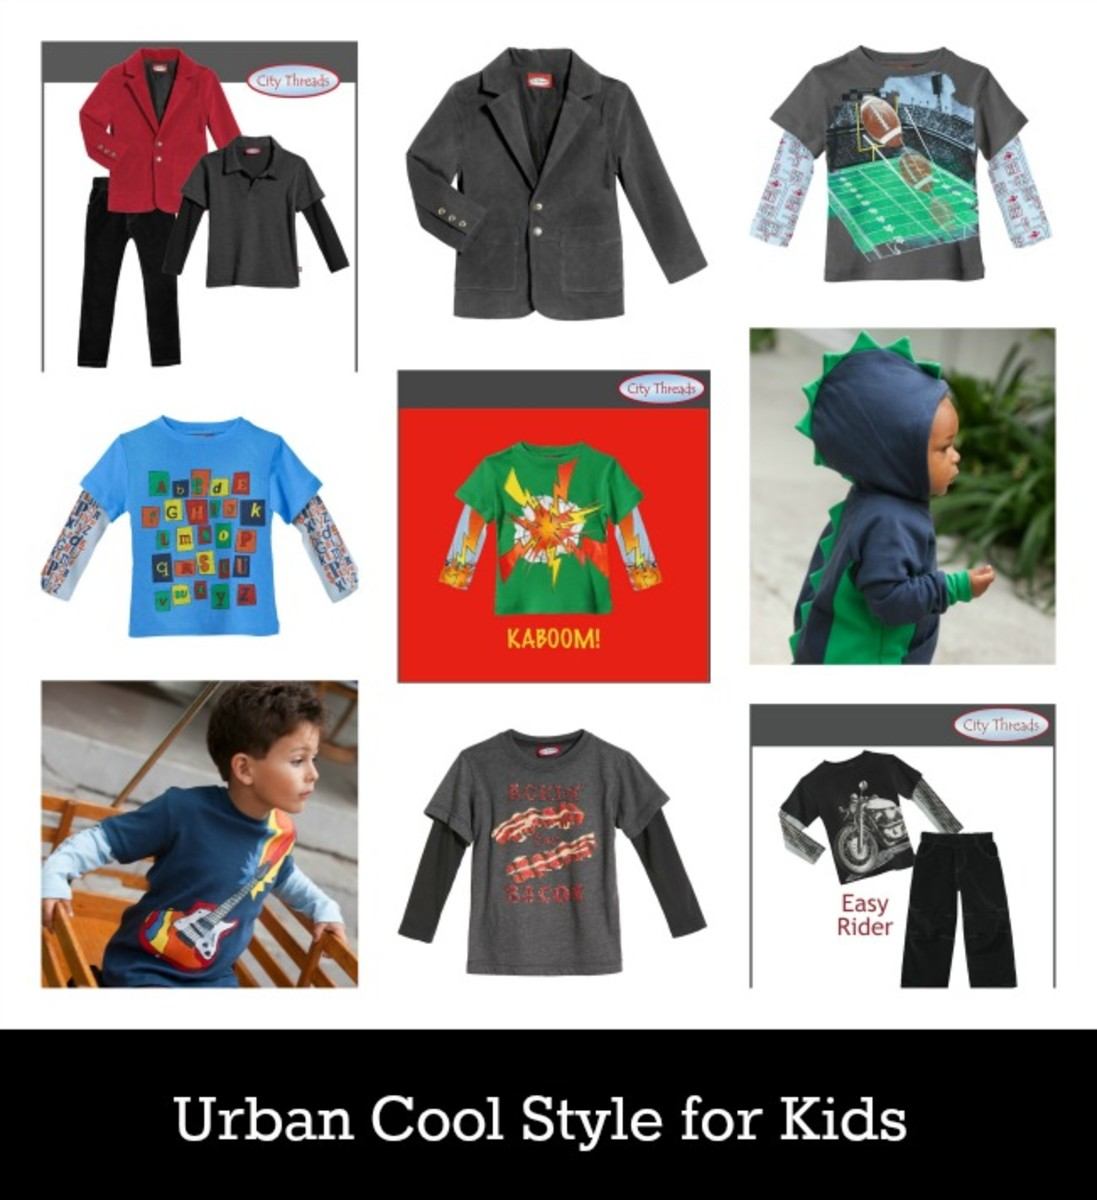 urbancoolstyle, kids, kids clothing